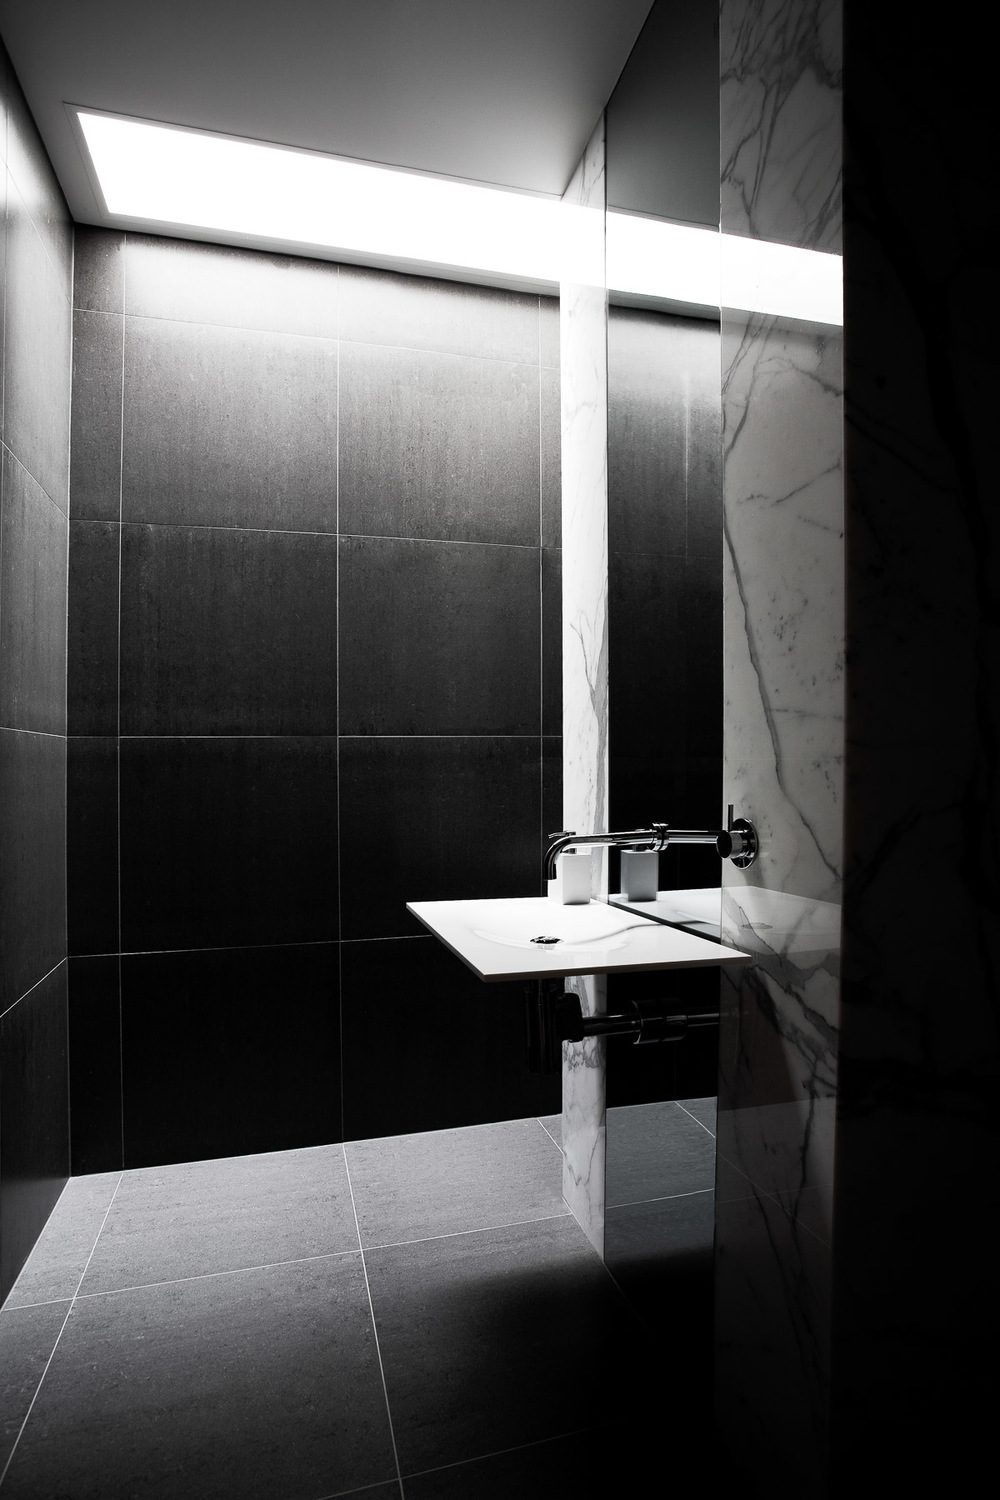 Bathroom with skylight and black tiles with marble wall over sink by Melbourne architecture photographer Stefan Postles